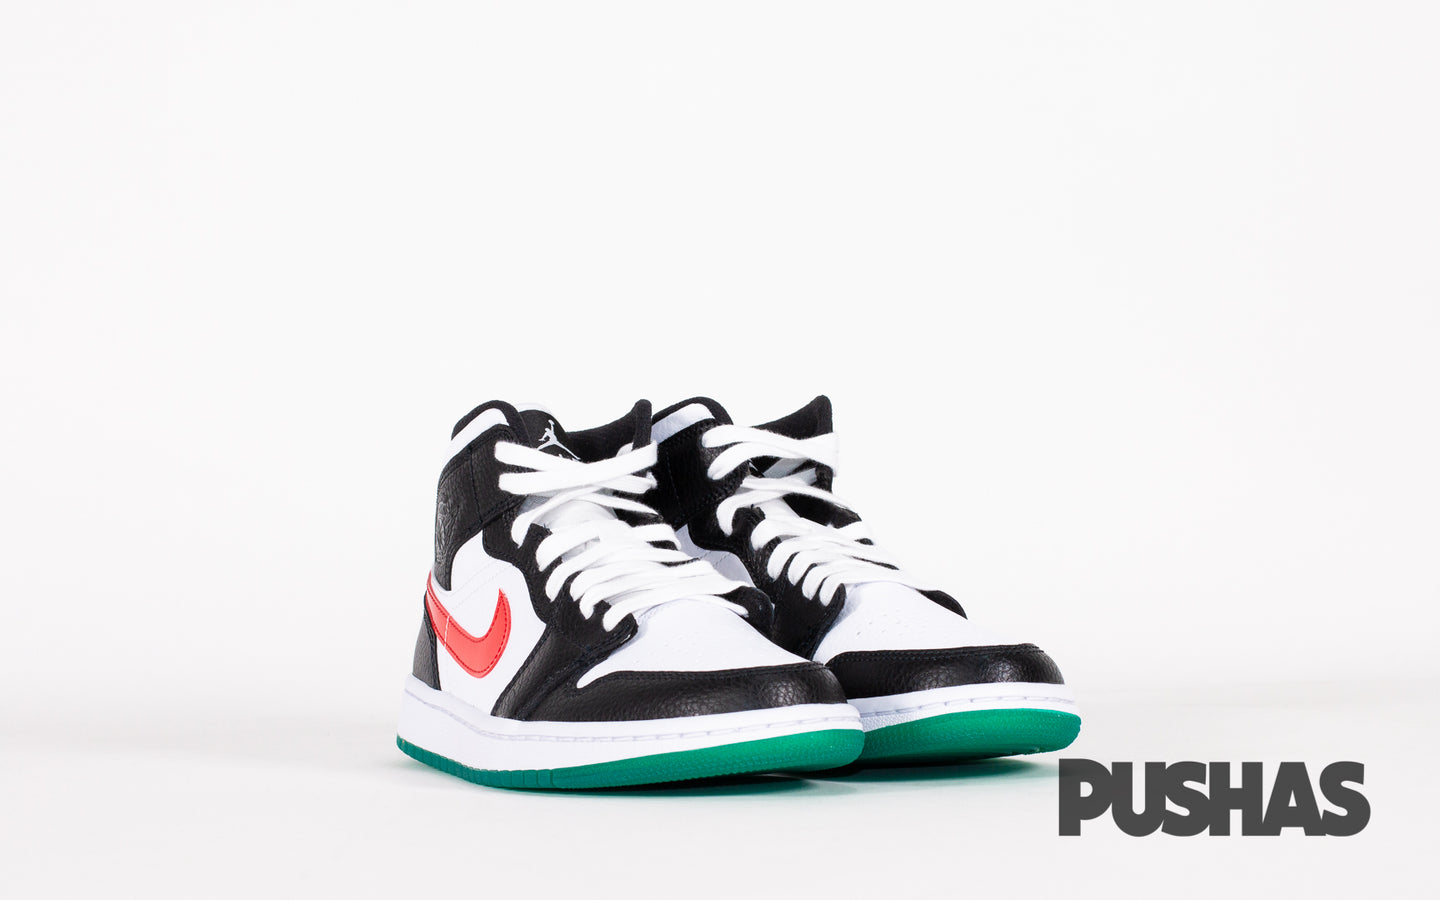 pushas-nike-Air-Jordan-1-Mid-W-Alternate-Swooshes